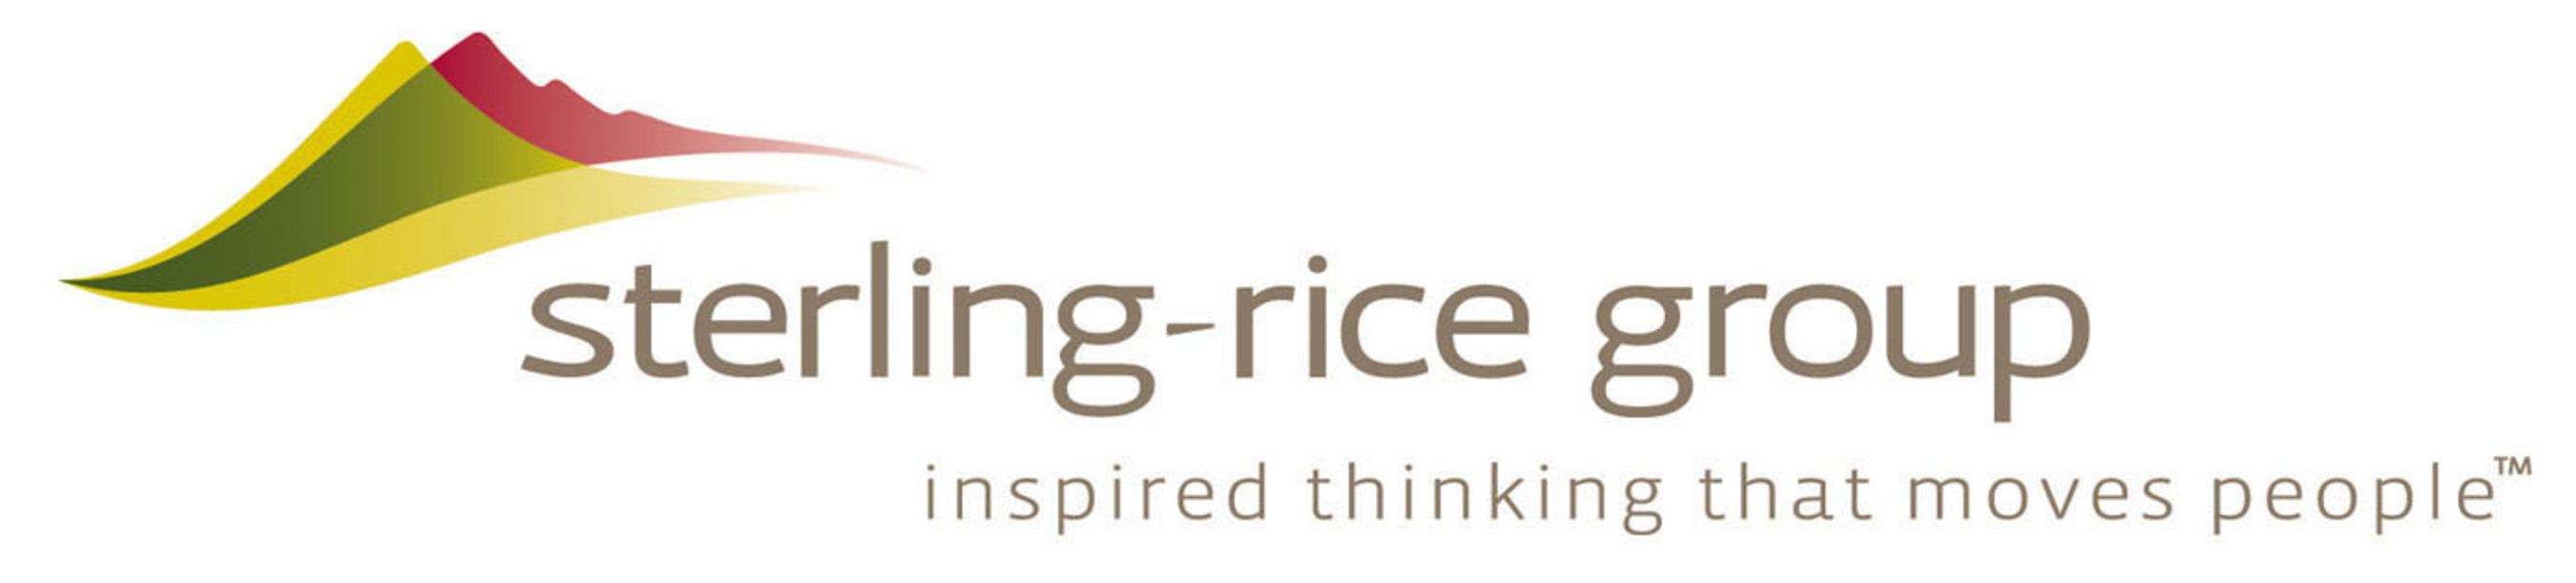 Headquartered in Boulder, Colorado, Sterling-Rice Group (SRG) is a nationally recognized leader in brand development. SRG proudly works with many of the top food and beverage companies in the world - providing research, strategy, design, product development and marketing communications. Visit www.srg.com for more information. (PRNewsFoto/Sterling-Rice Group) (PRNewsFoto/STERLING-RICE GROUP)